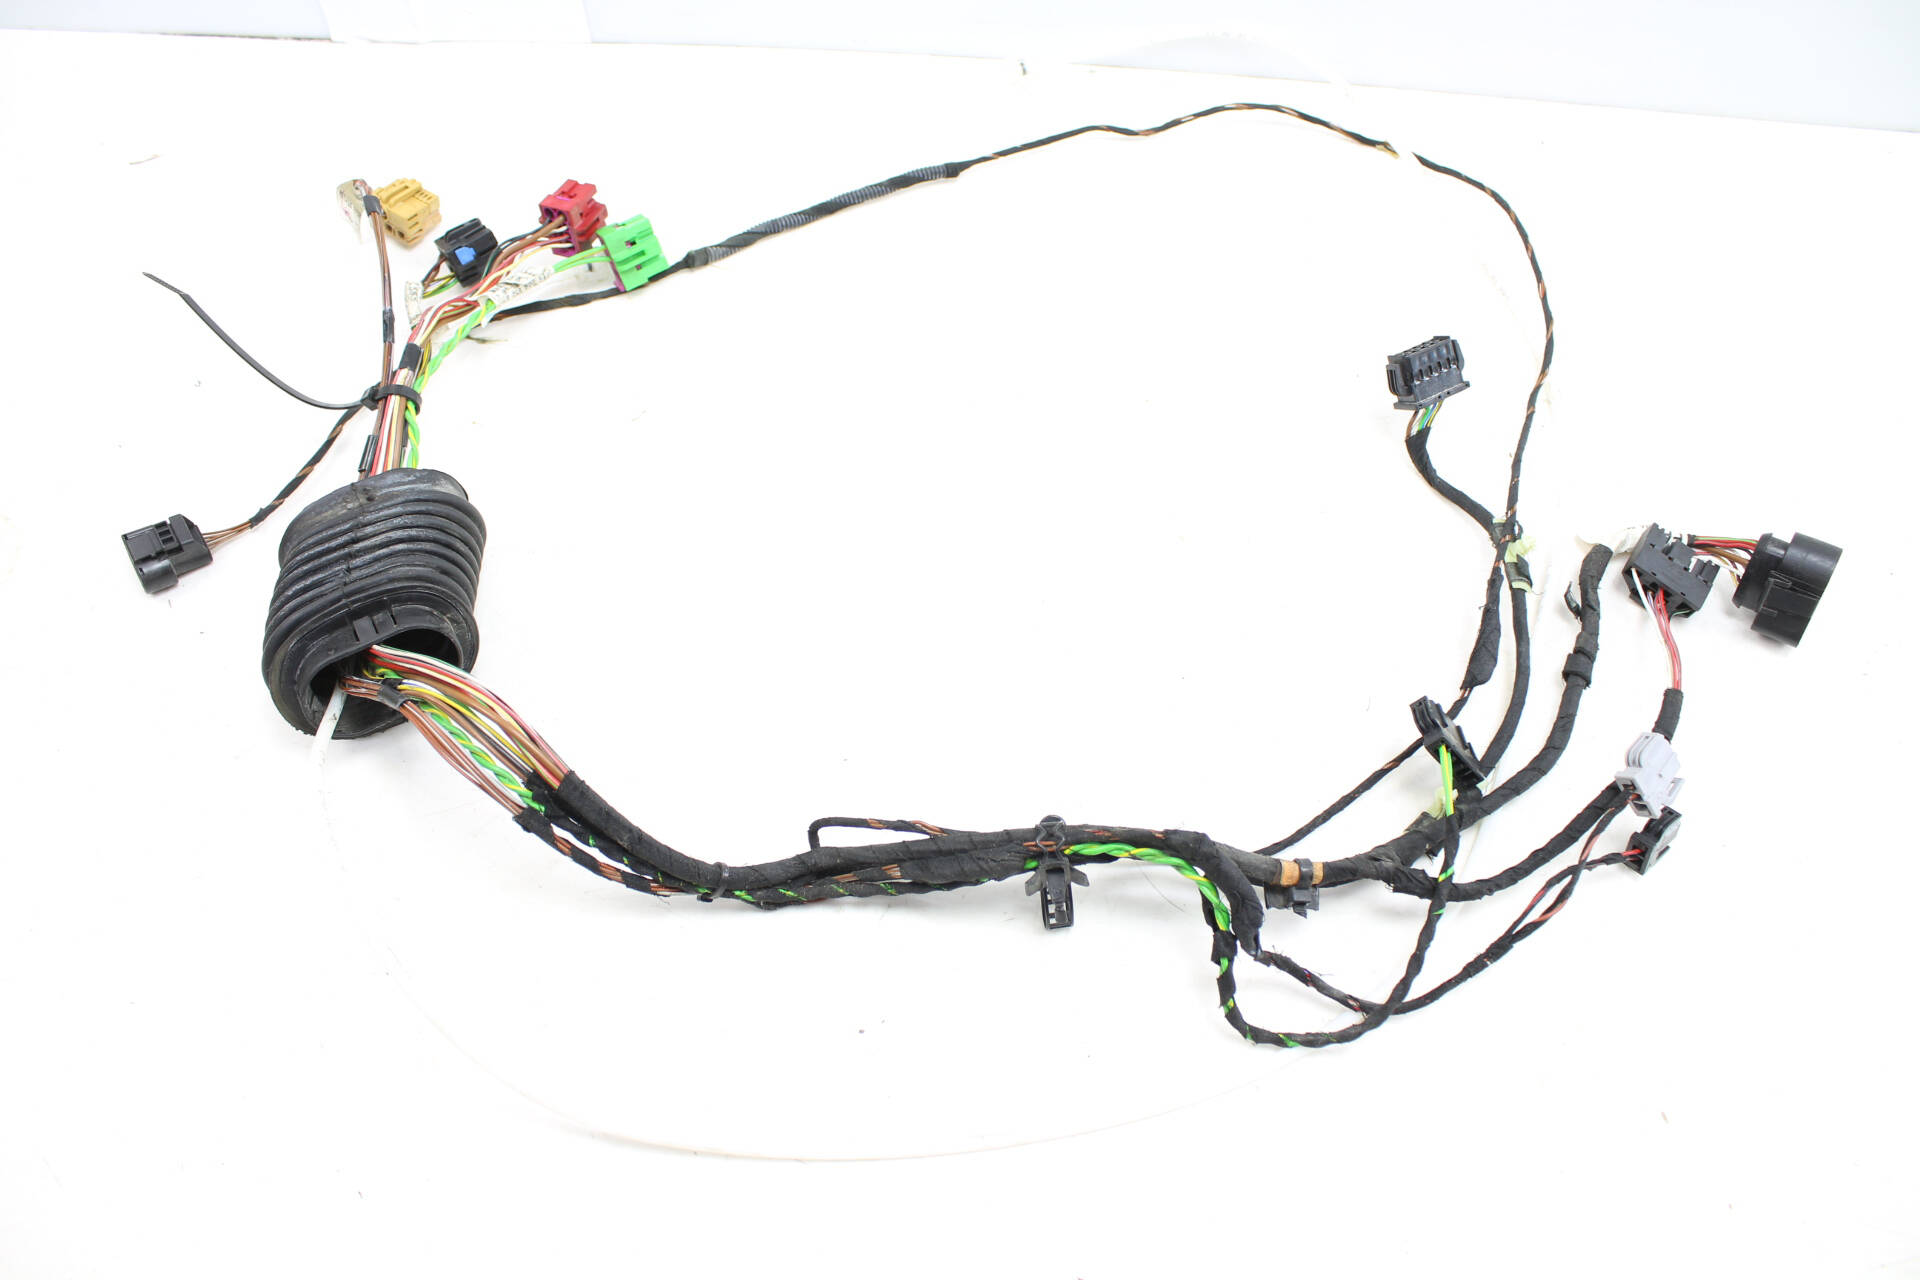 hight resolution of 2000 2001 2002 audi s4 b5 front right door wiring harness large photo large photo thumbnail photo thumbnail photo